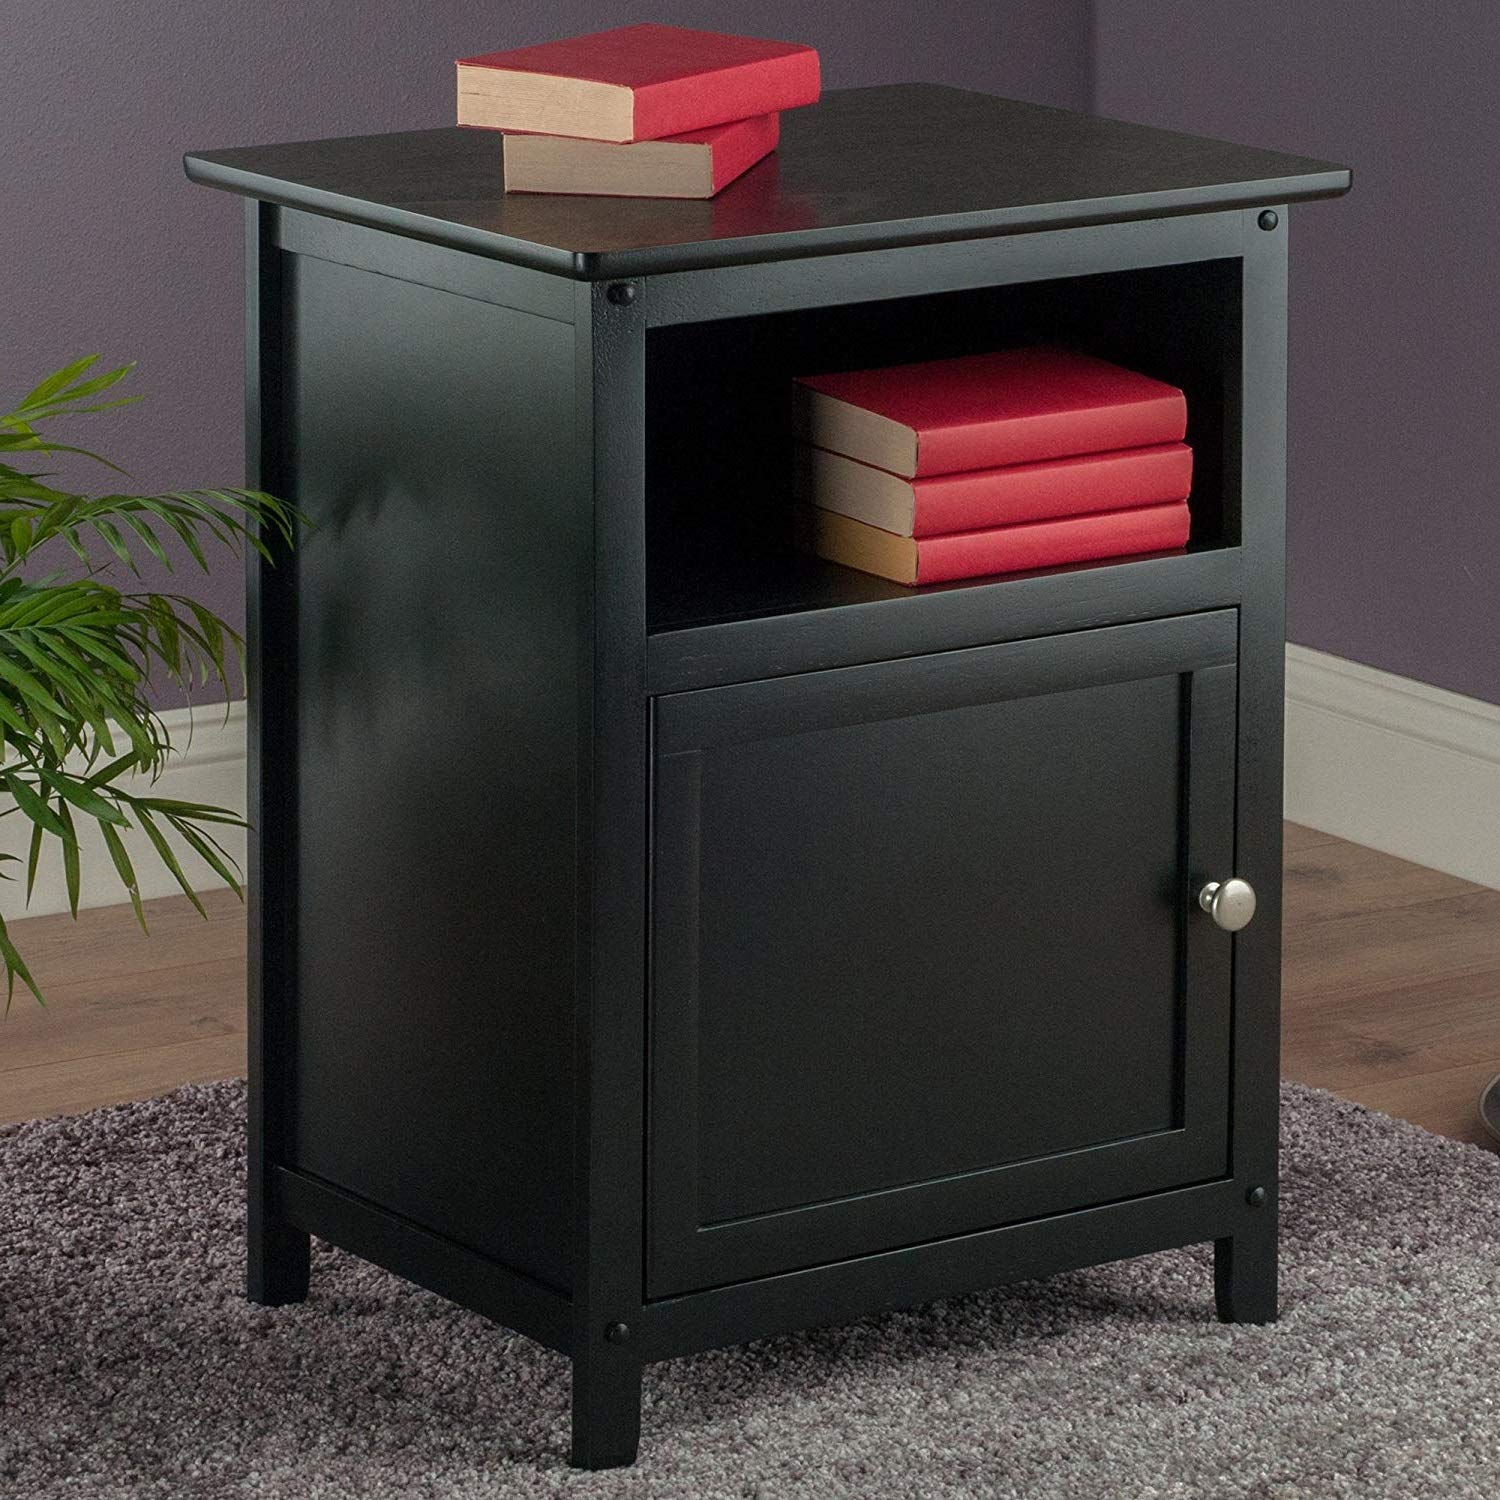 door sturdy nightstand winsome wood accent table end instructions bookshelf bedside shelf for storage black finish kitchen dining leather living room sets modern industrial tables